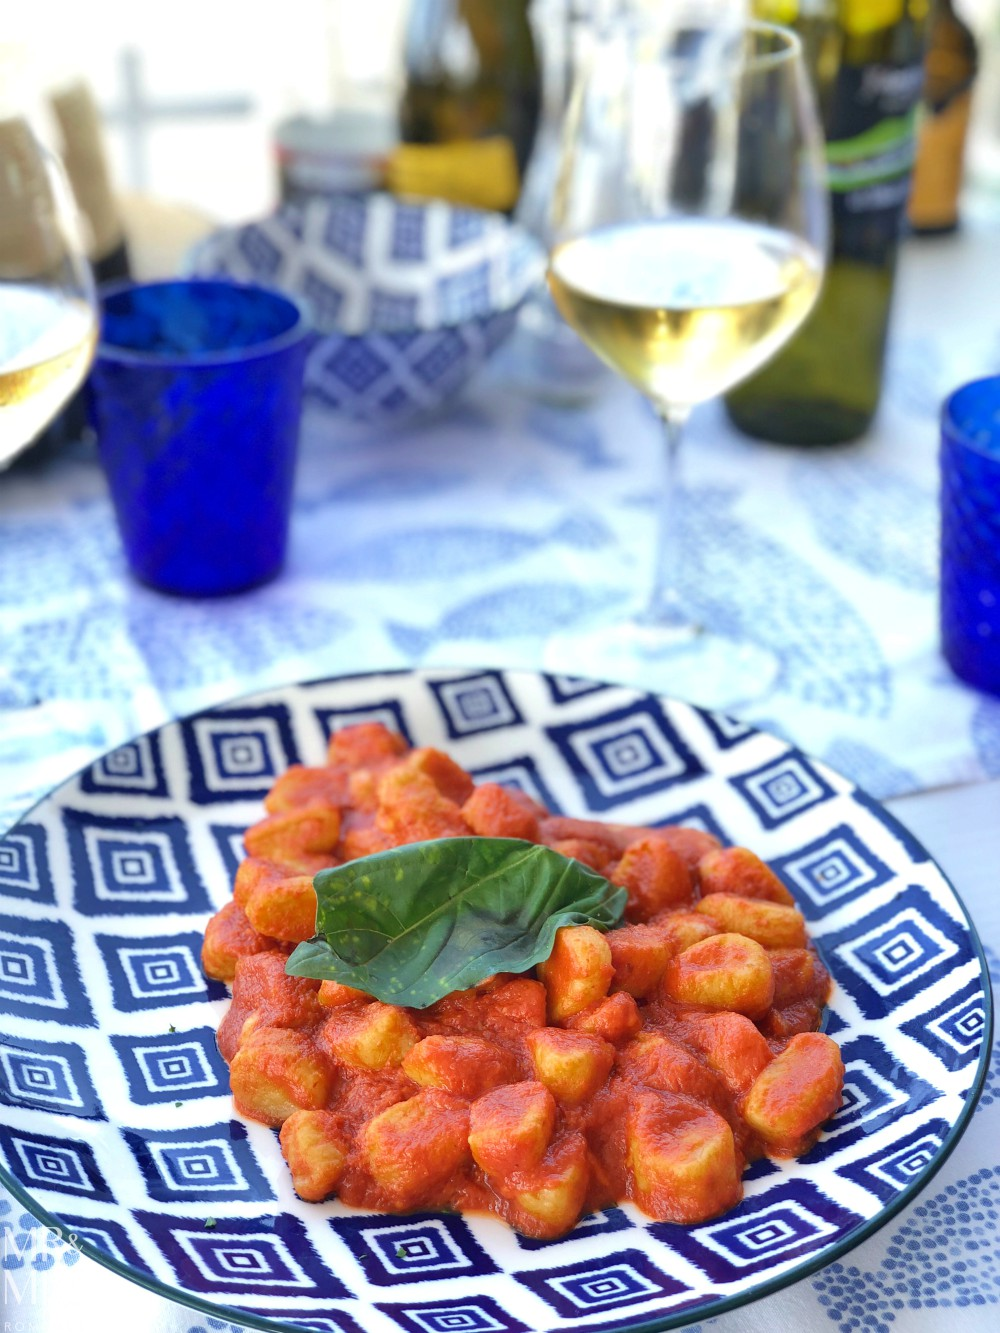 Food to eat in Naples - gnocchi al sorrentina